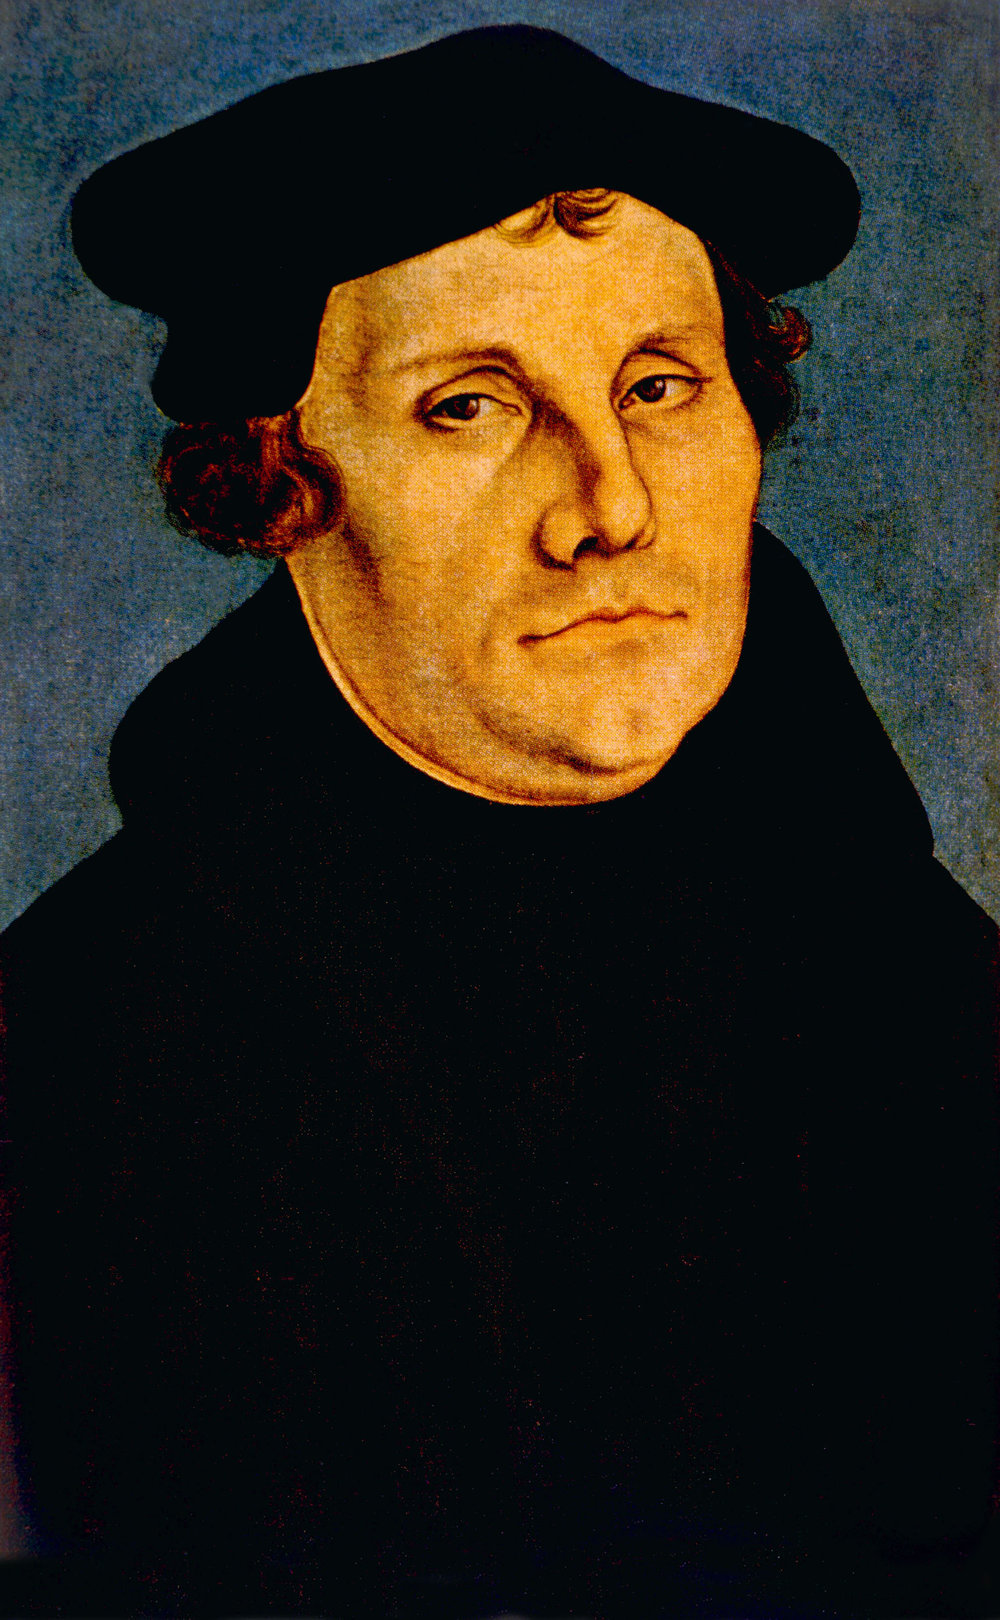 Martin Luther was a part of the Protestant Reformation. He nailed his 95 Theses to the door of Castle Church in Germany.